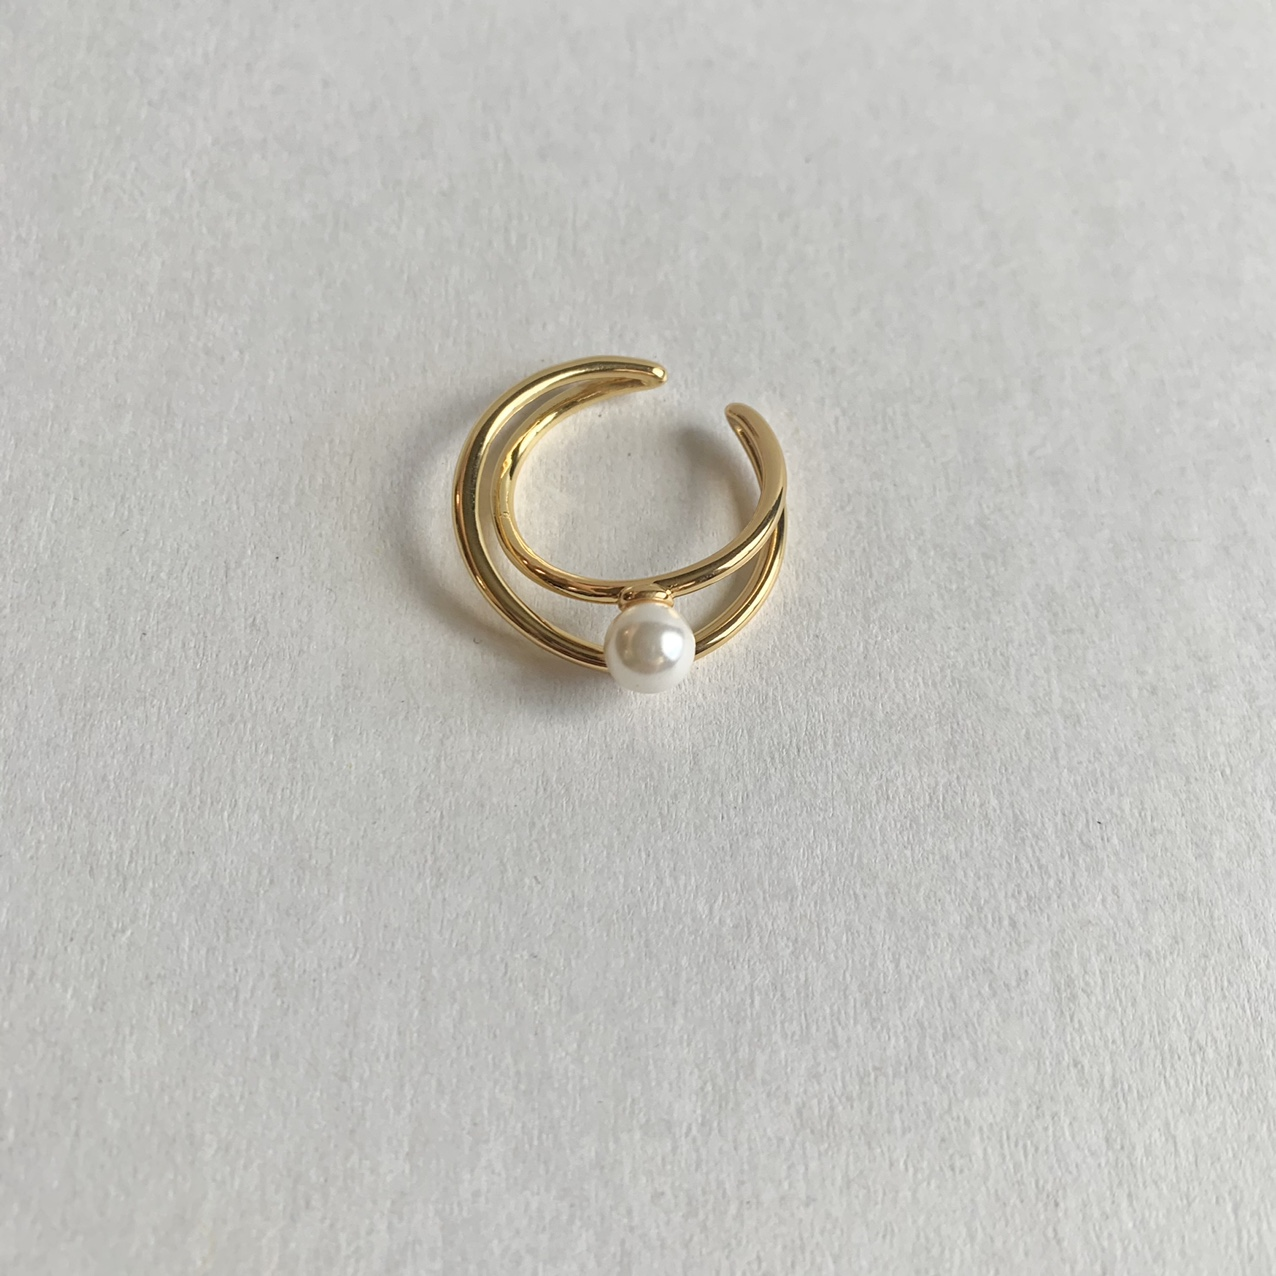 Product Image 1 - Minimalist ring pearl ring   A